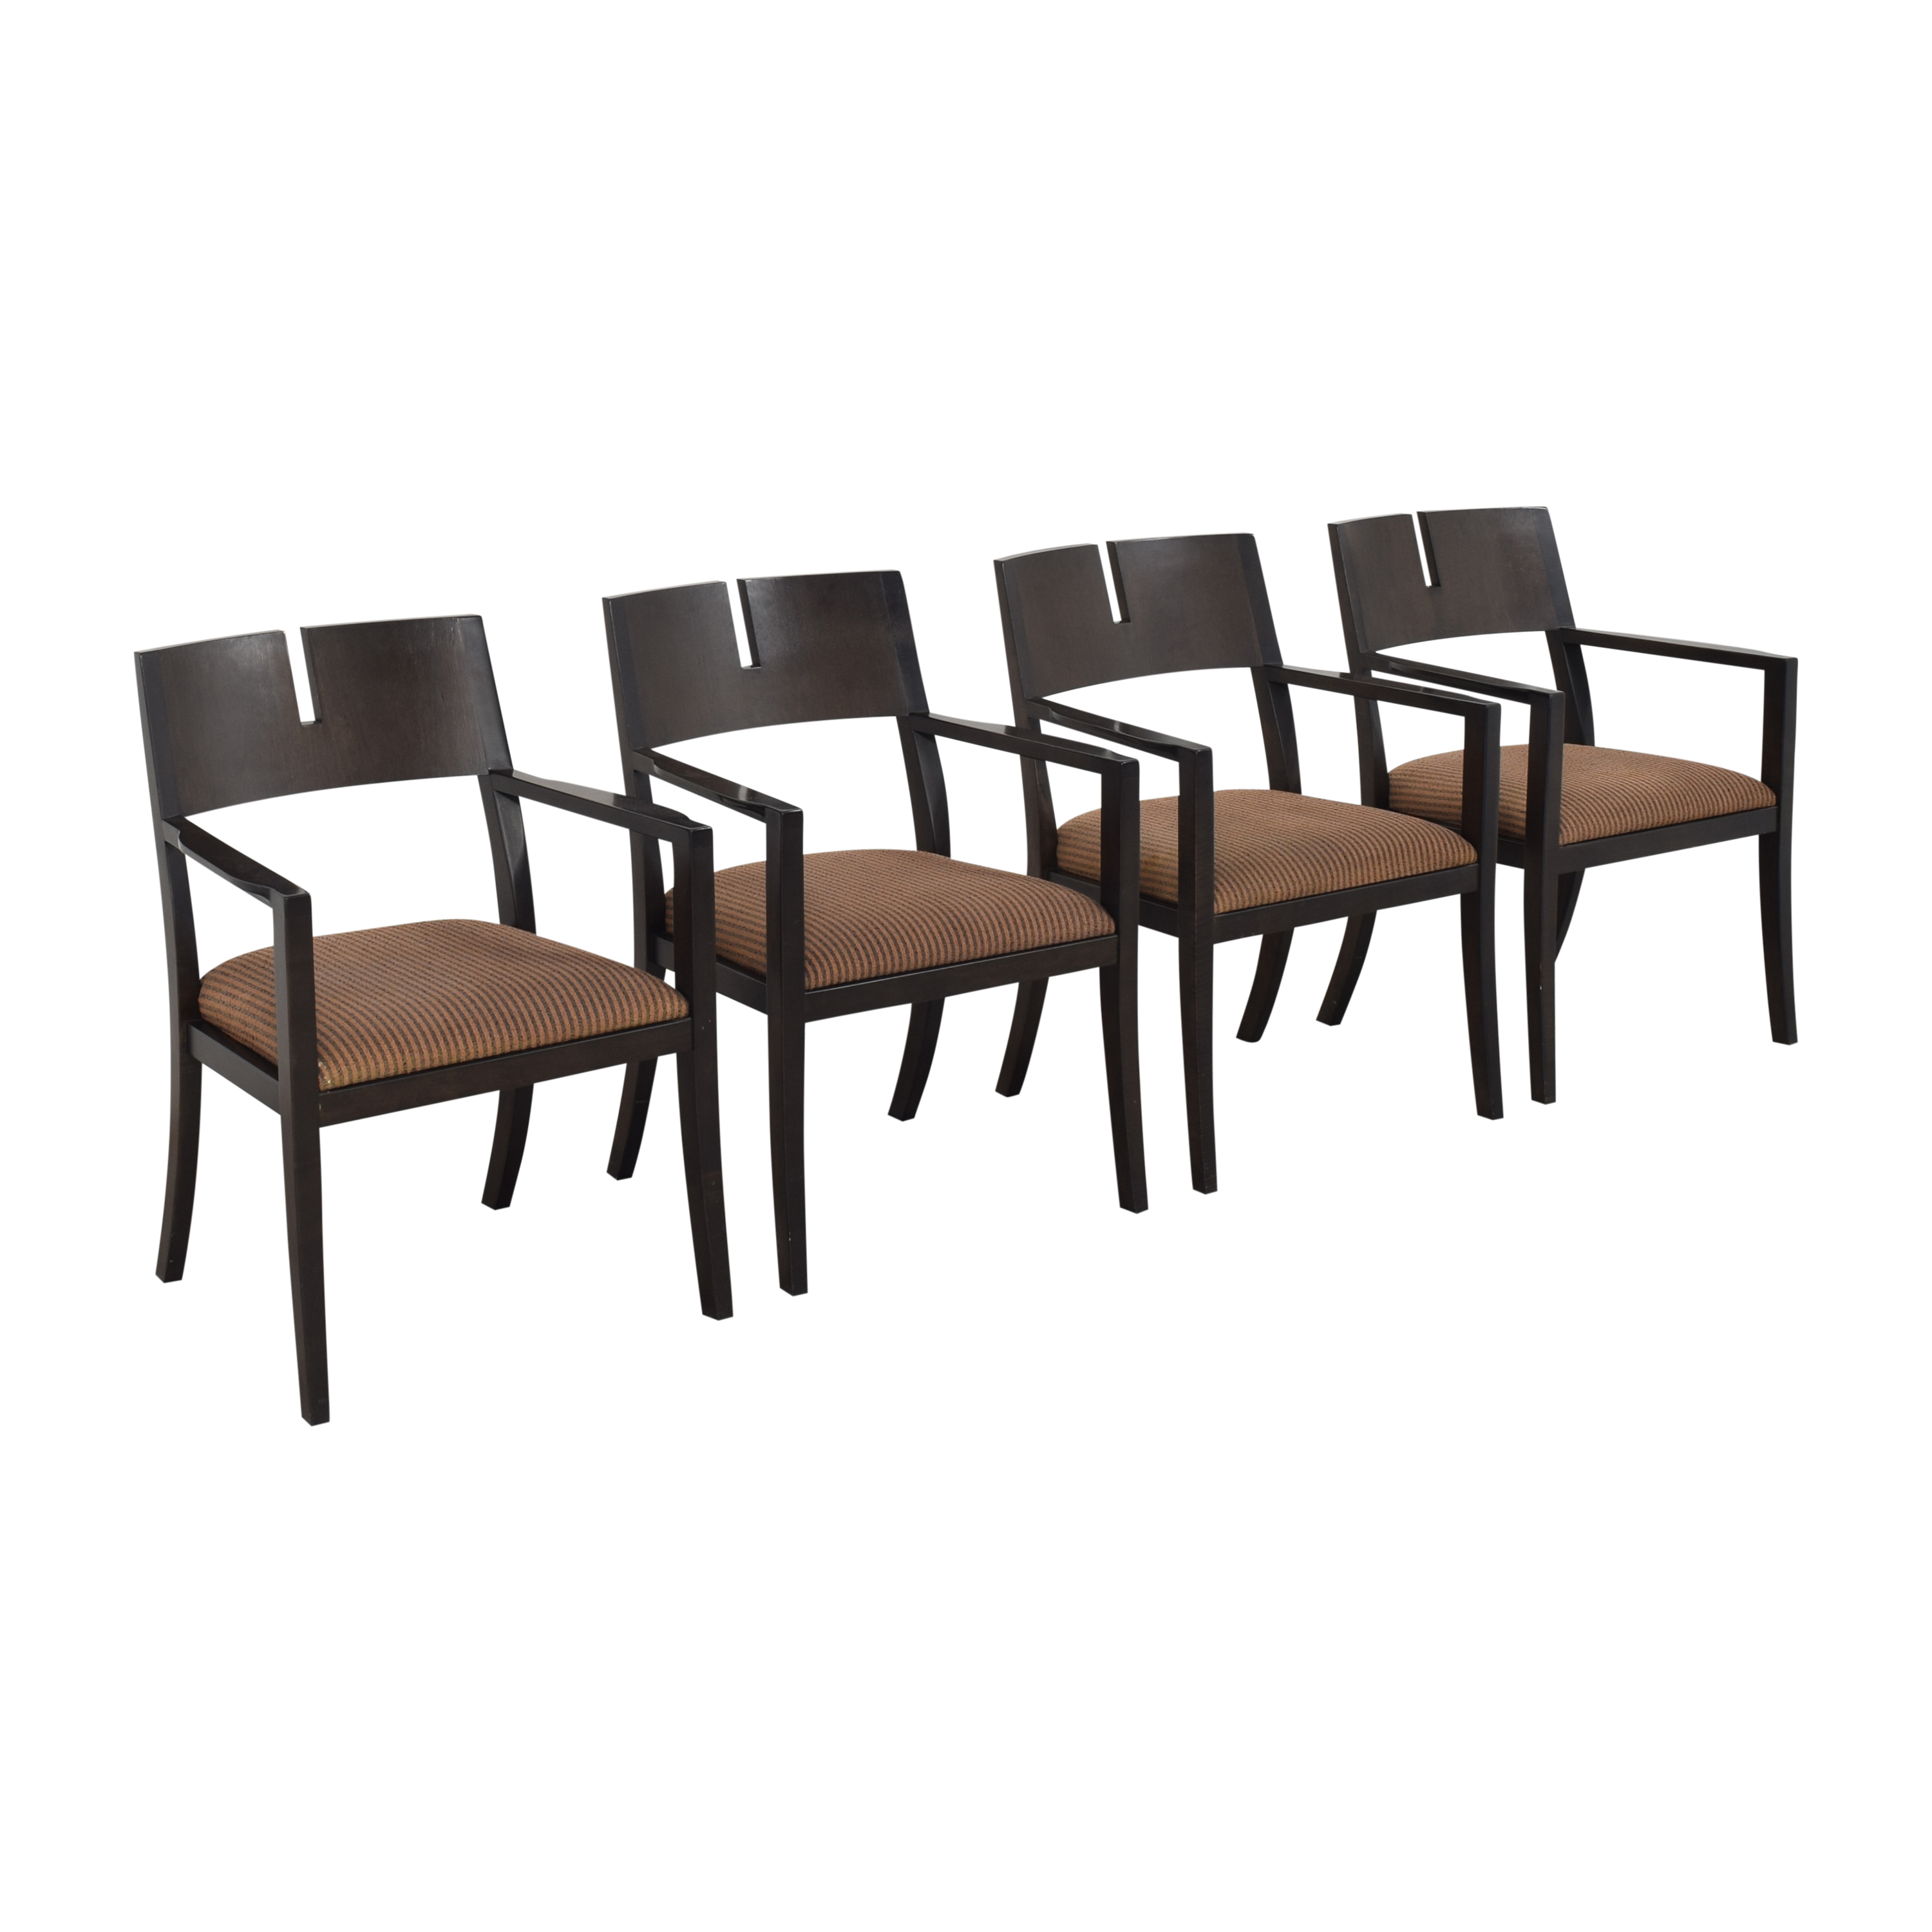 buy Martin Brattrud Upholstered Dining Chairs Martin Brattrud Chairs